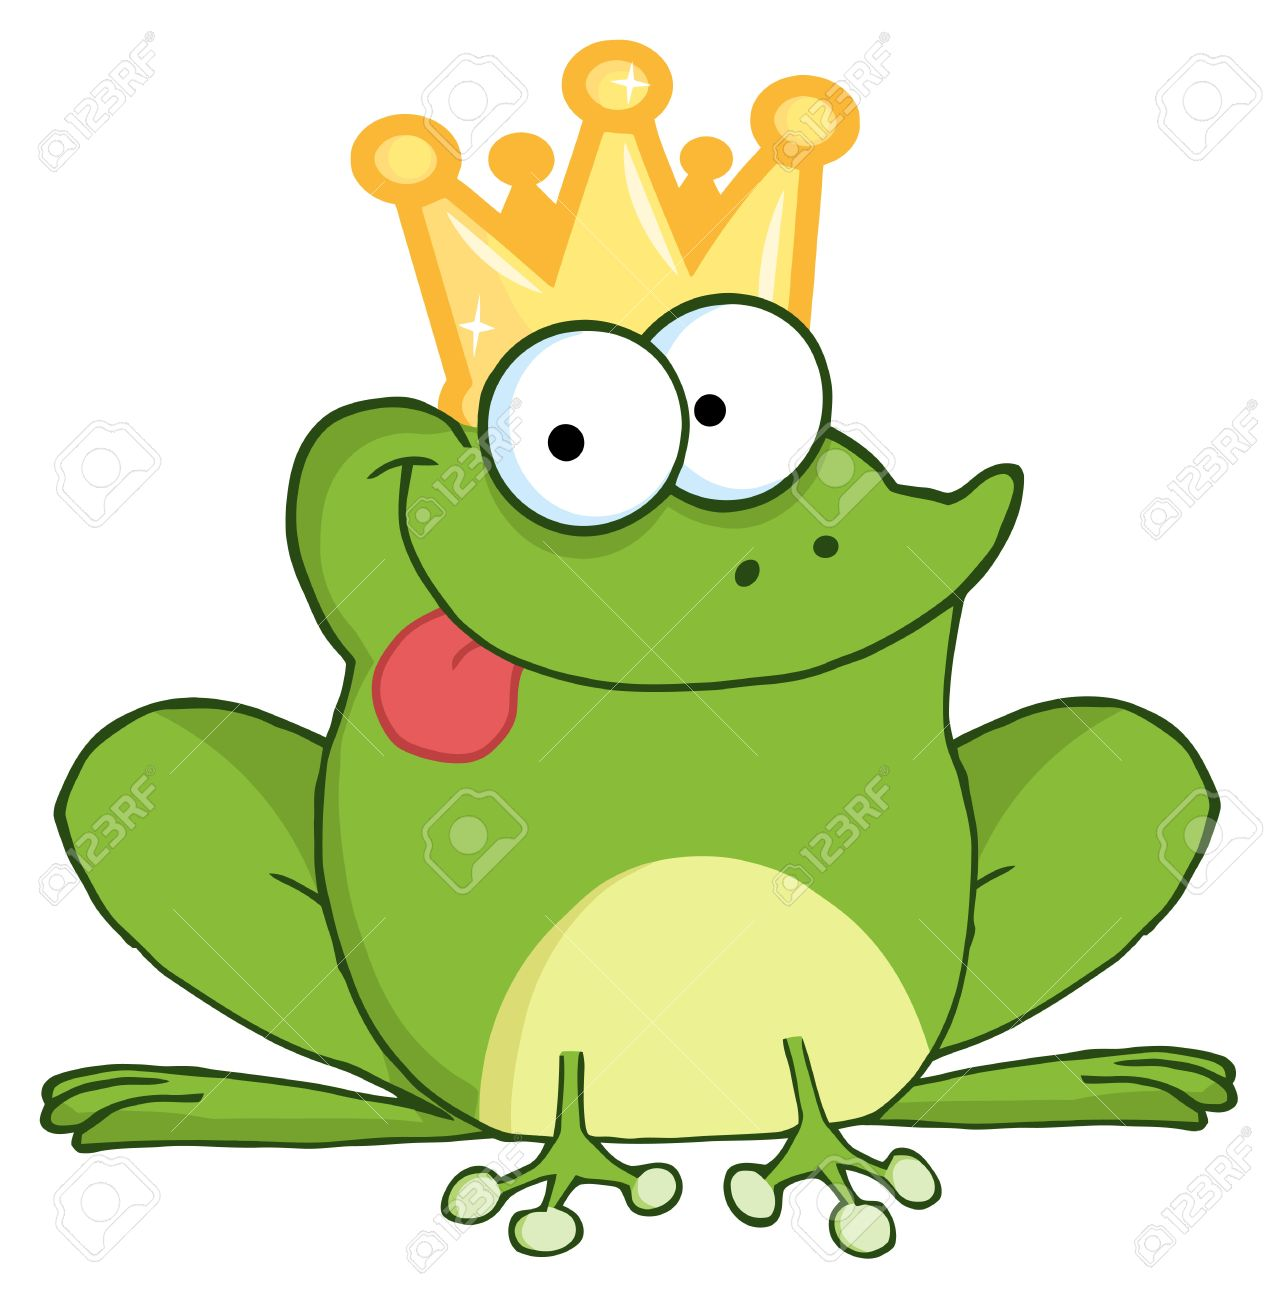 mamy, mamy Blou....... - Page 2 8721147-frog-prince-cartoon-character-Stock-Vector